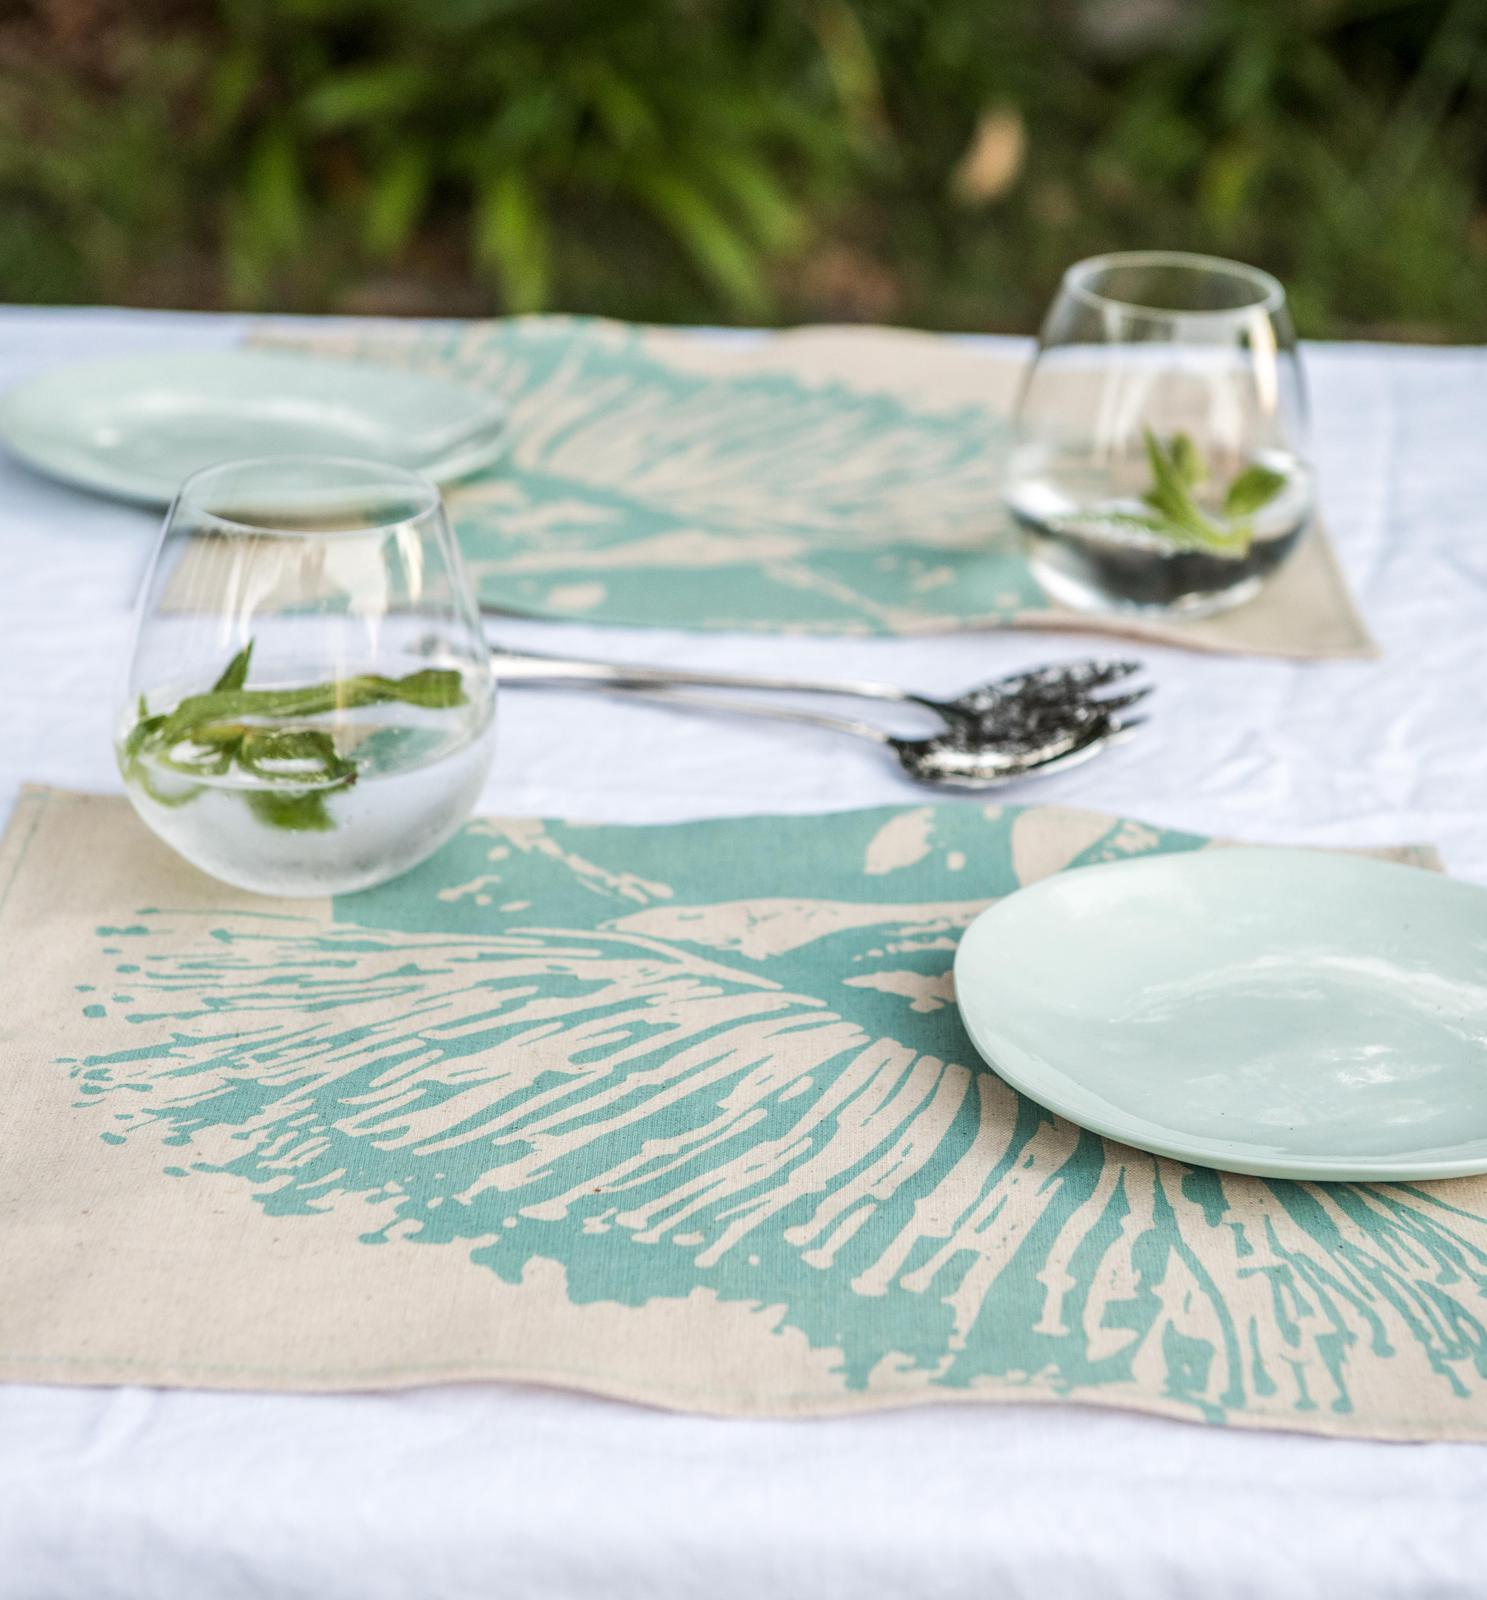 Table Setting- Placemats 'Mallee Blossom' in soft Turquoise